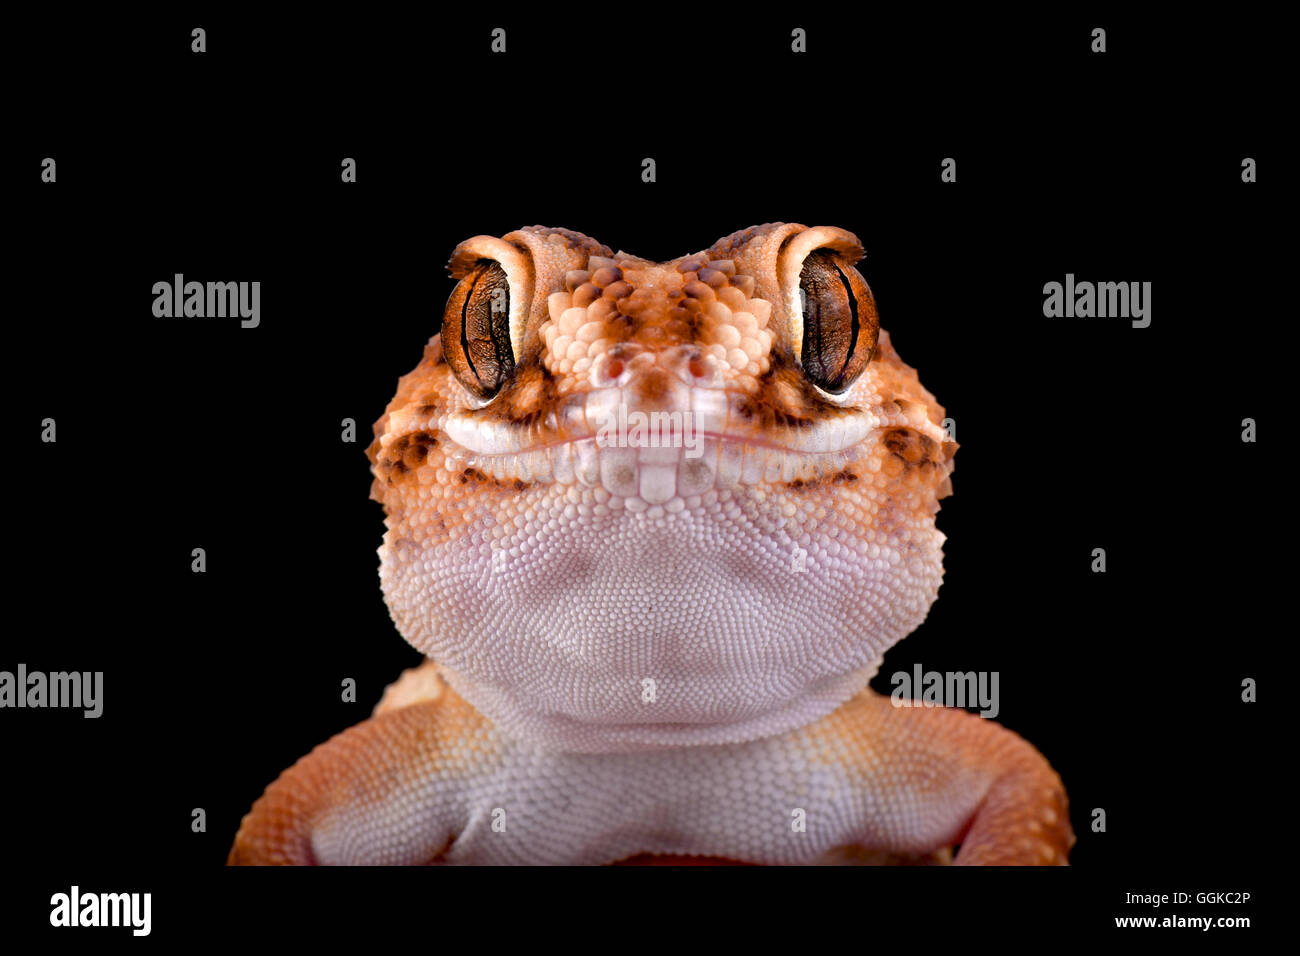 South African Ground Gecko  (Chondrodactylus angulifer ), Namibia - Stock Image